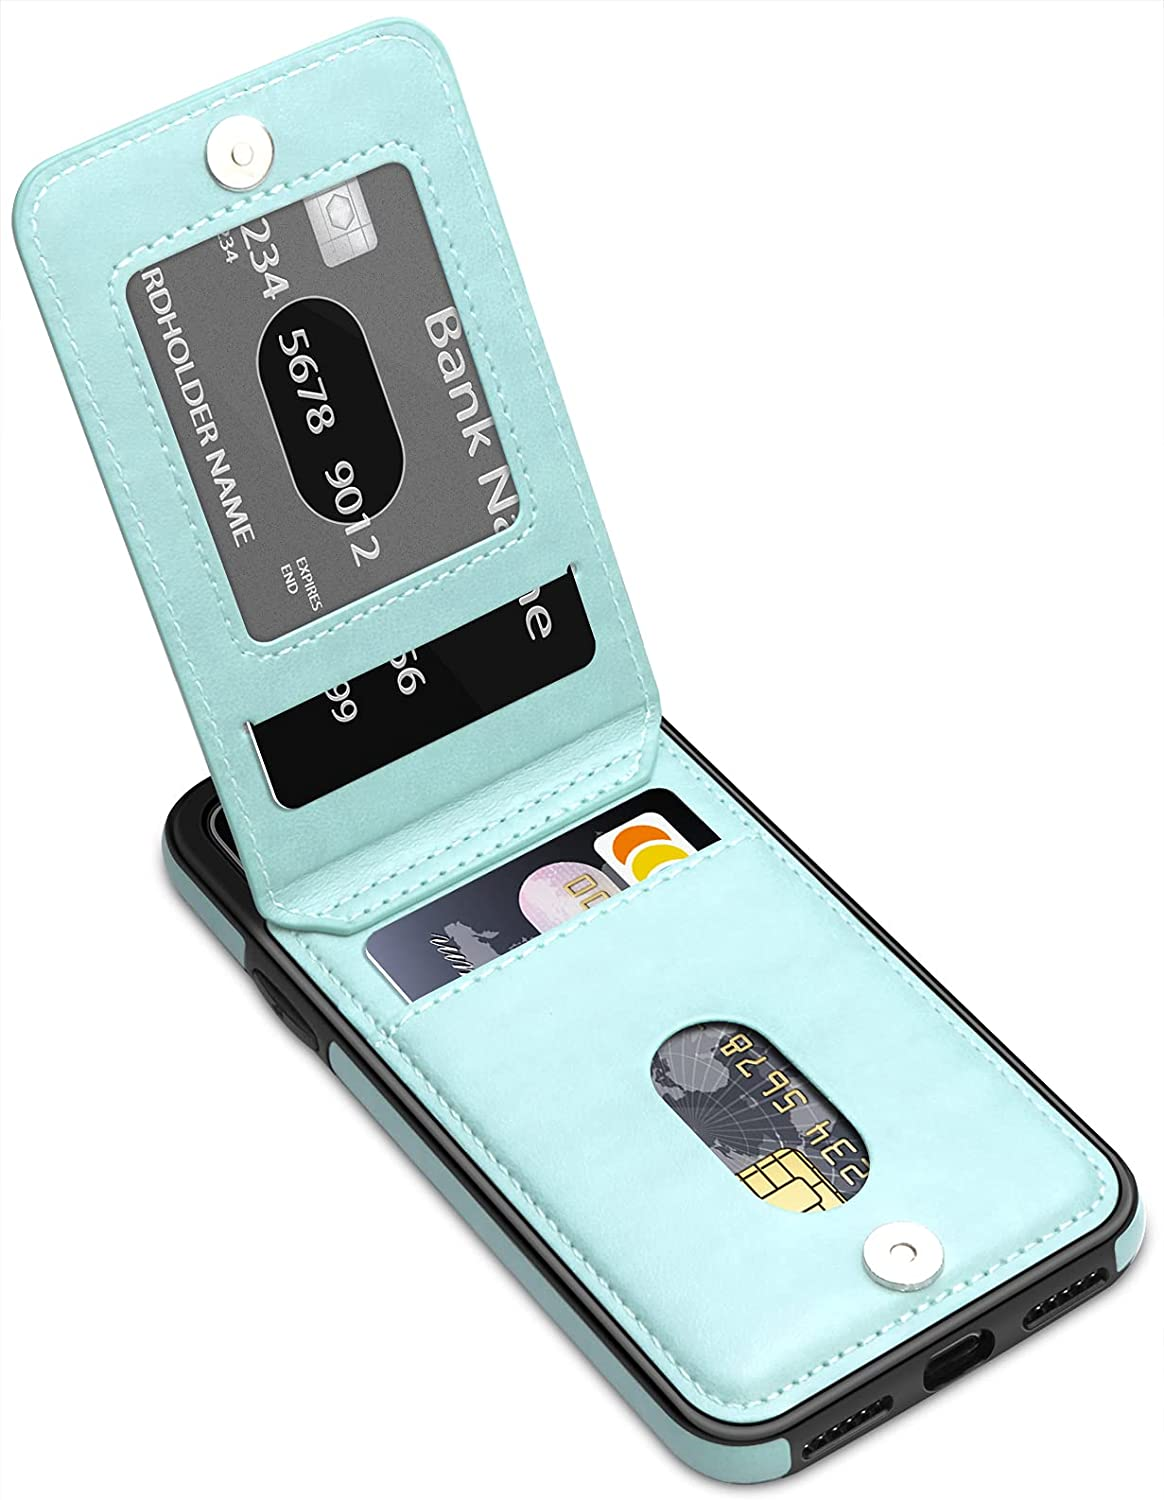 LakiBeibi for iPhone XR Case for Women Girls, Dual Layer Premium Leather iPhone XR Wallet Case with Card Holders Flip Shockproof Protective Case for iPhone XR Phone Case 6.1 Inches (2018), Mint